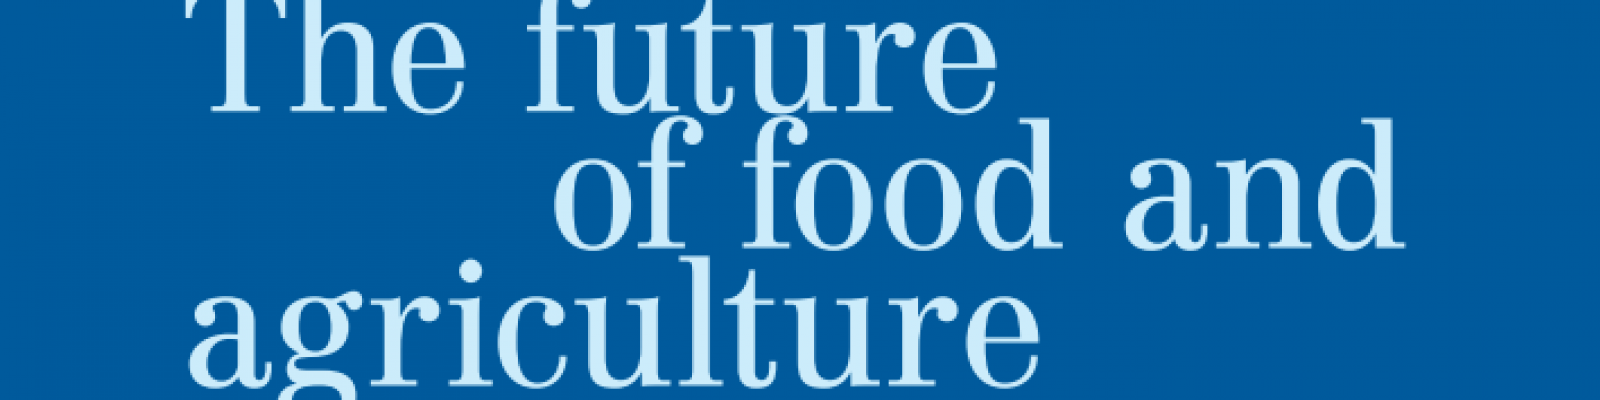 FAO_estudio_the_fuuture_of_food_and_agriculture